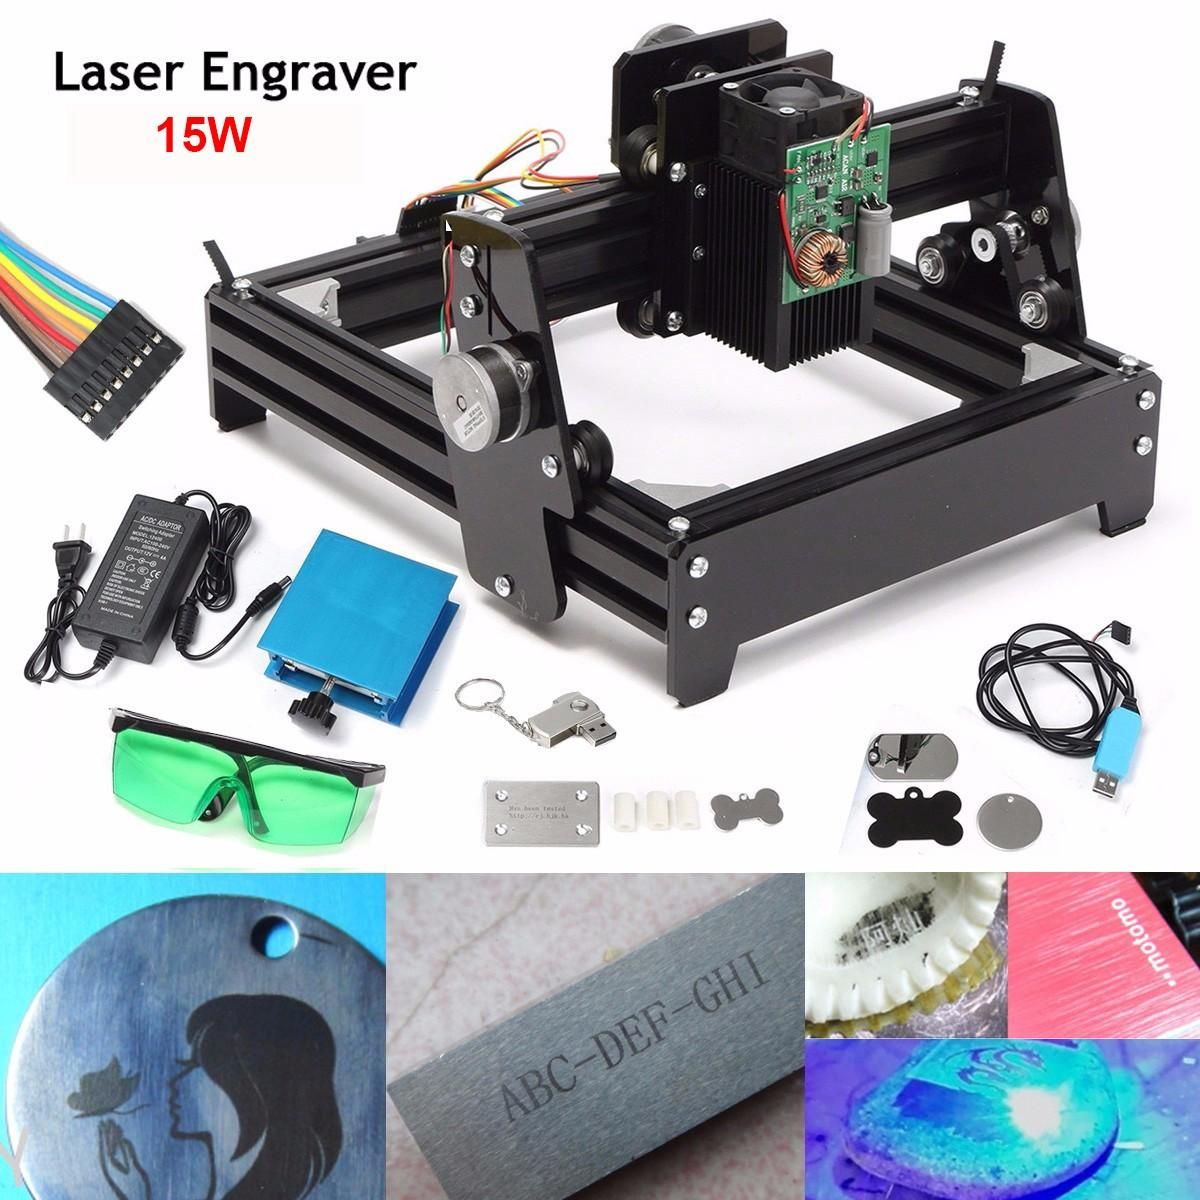 New 15W Laser AS-5 USB Desktop 15000mW CNC Laser Engraver DIY Marking Machine For Metal Stone Wood Engraving Area 14 x 20cm